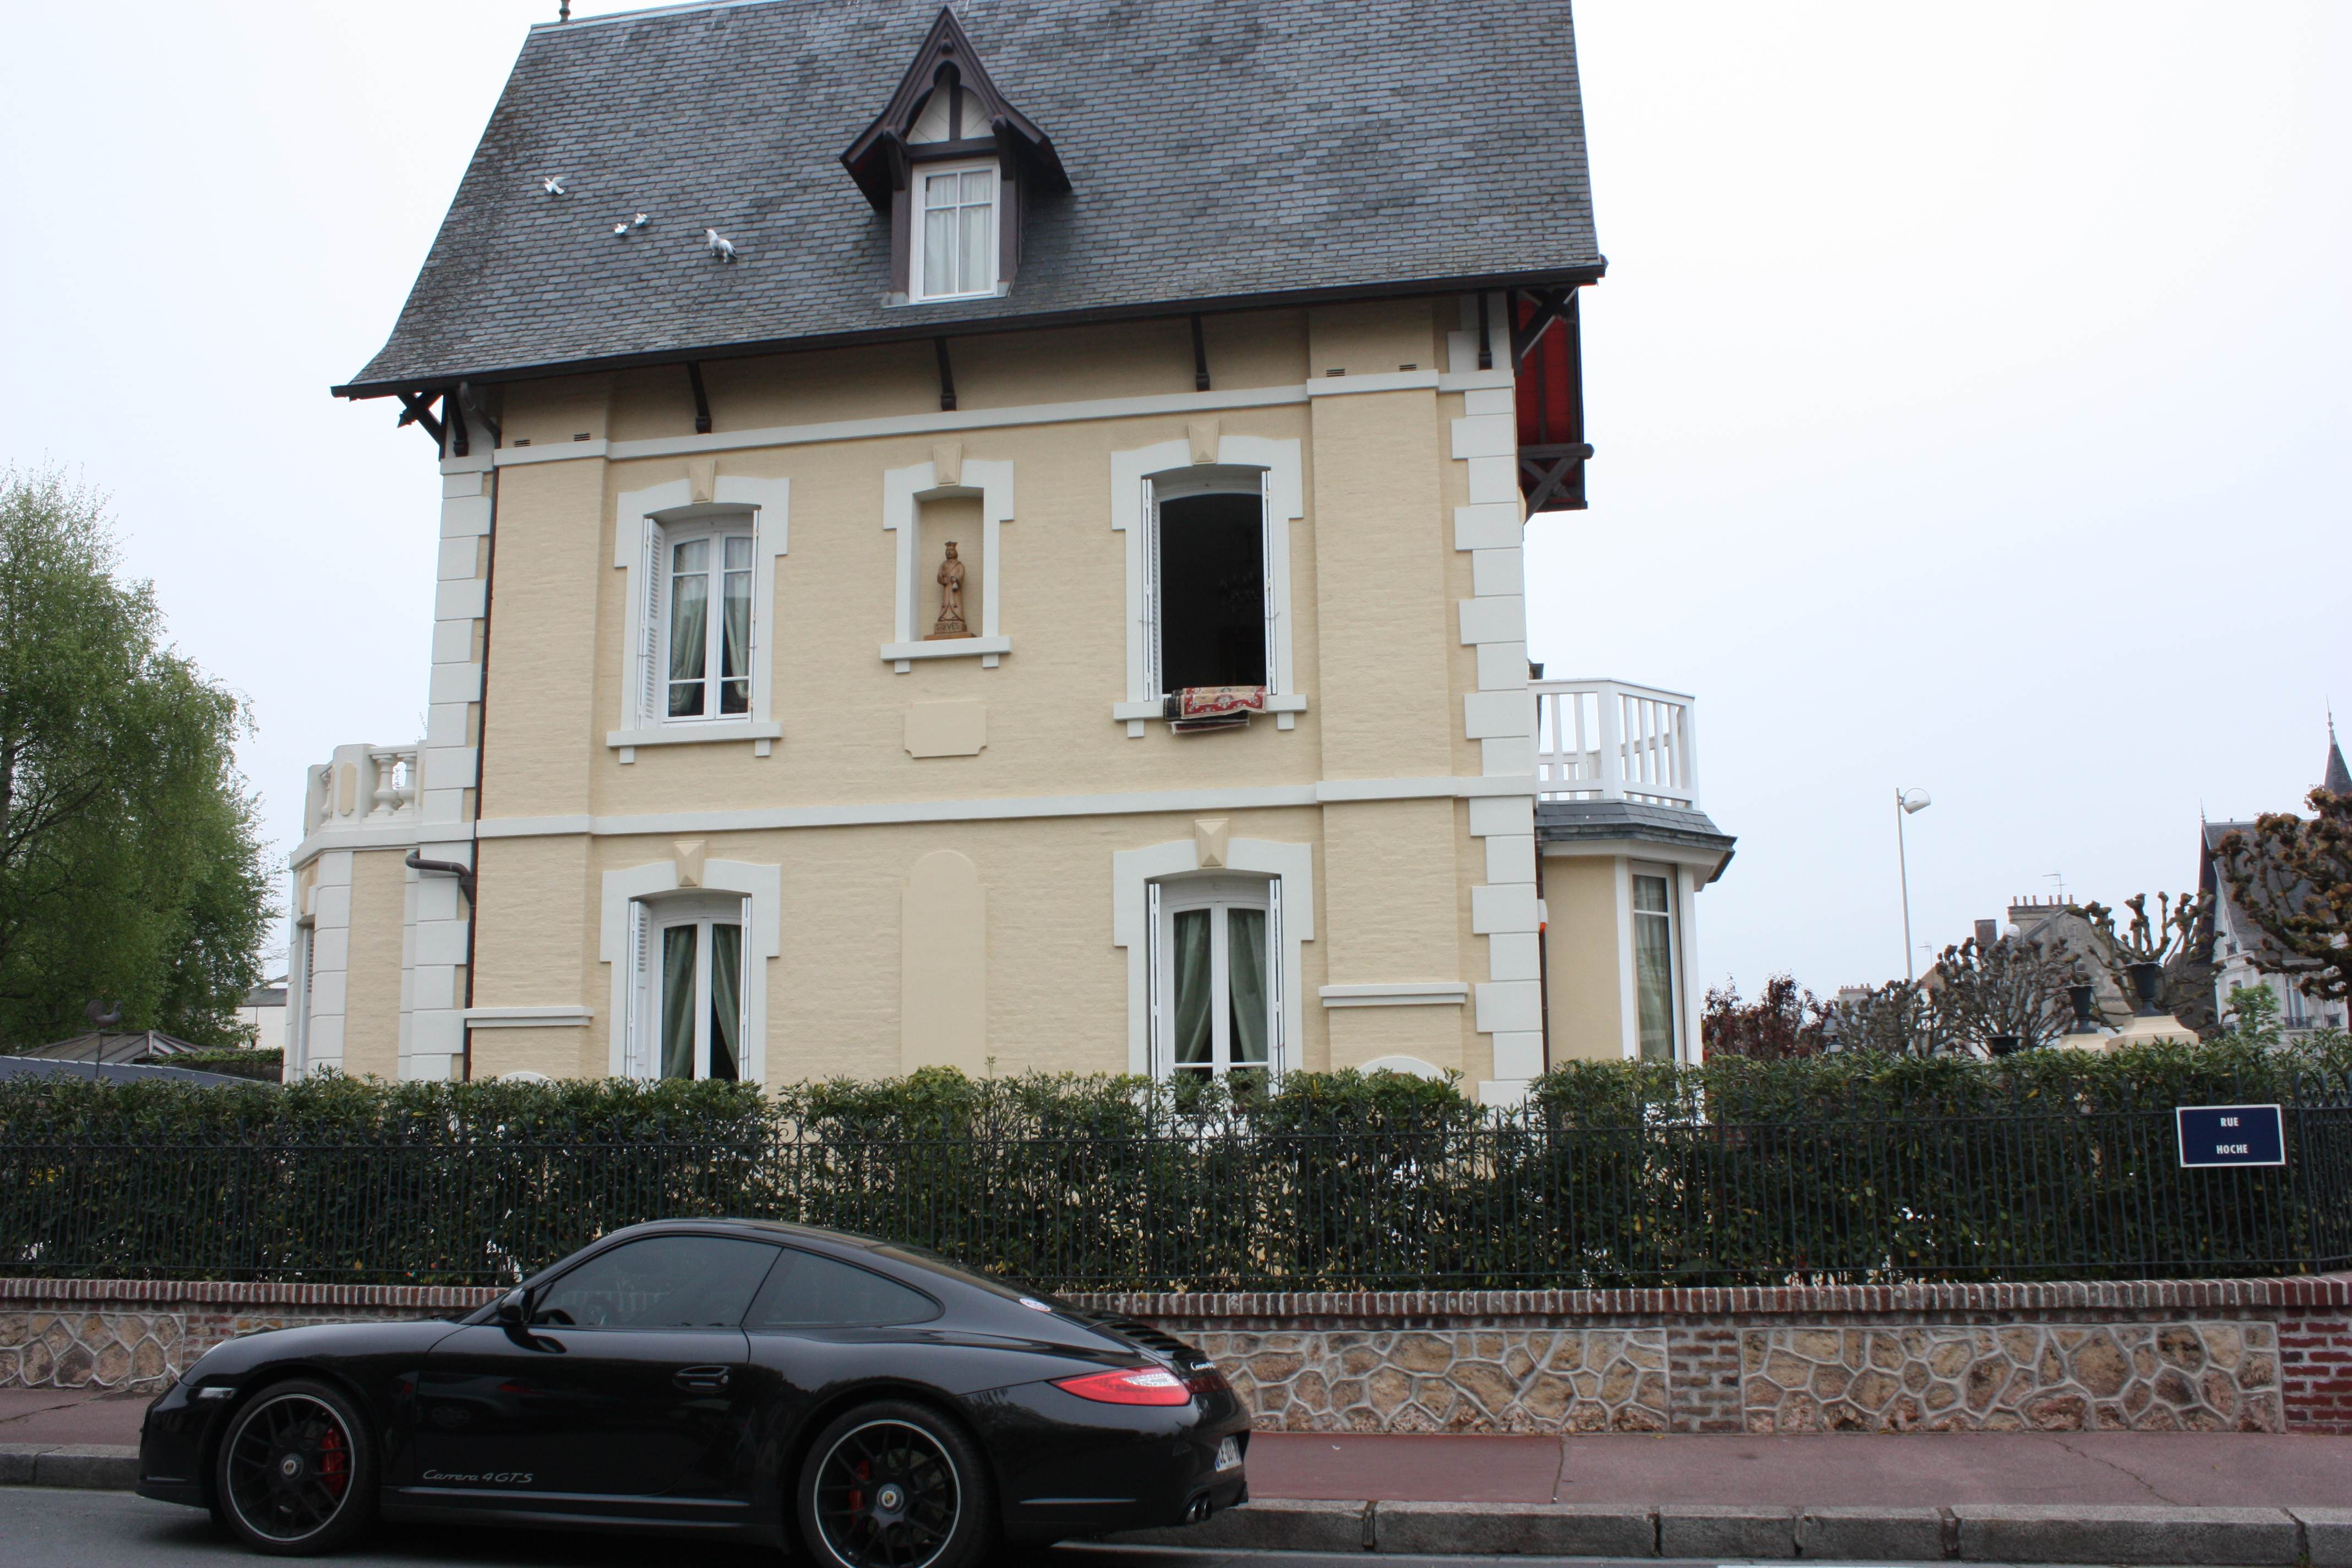 Break-in-Northern-France-to-Closerie-Honfleur4 Deauville, Honfleur, Trouville